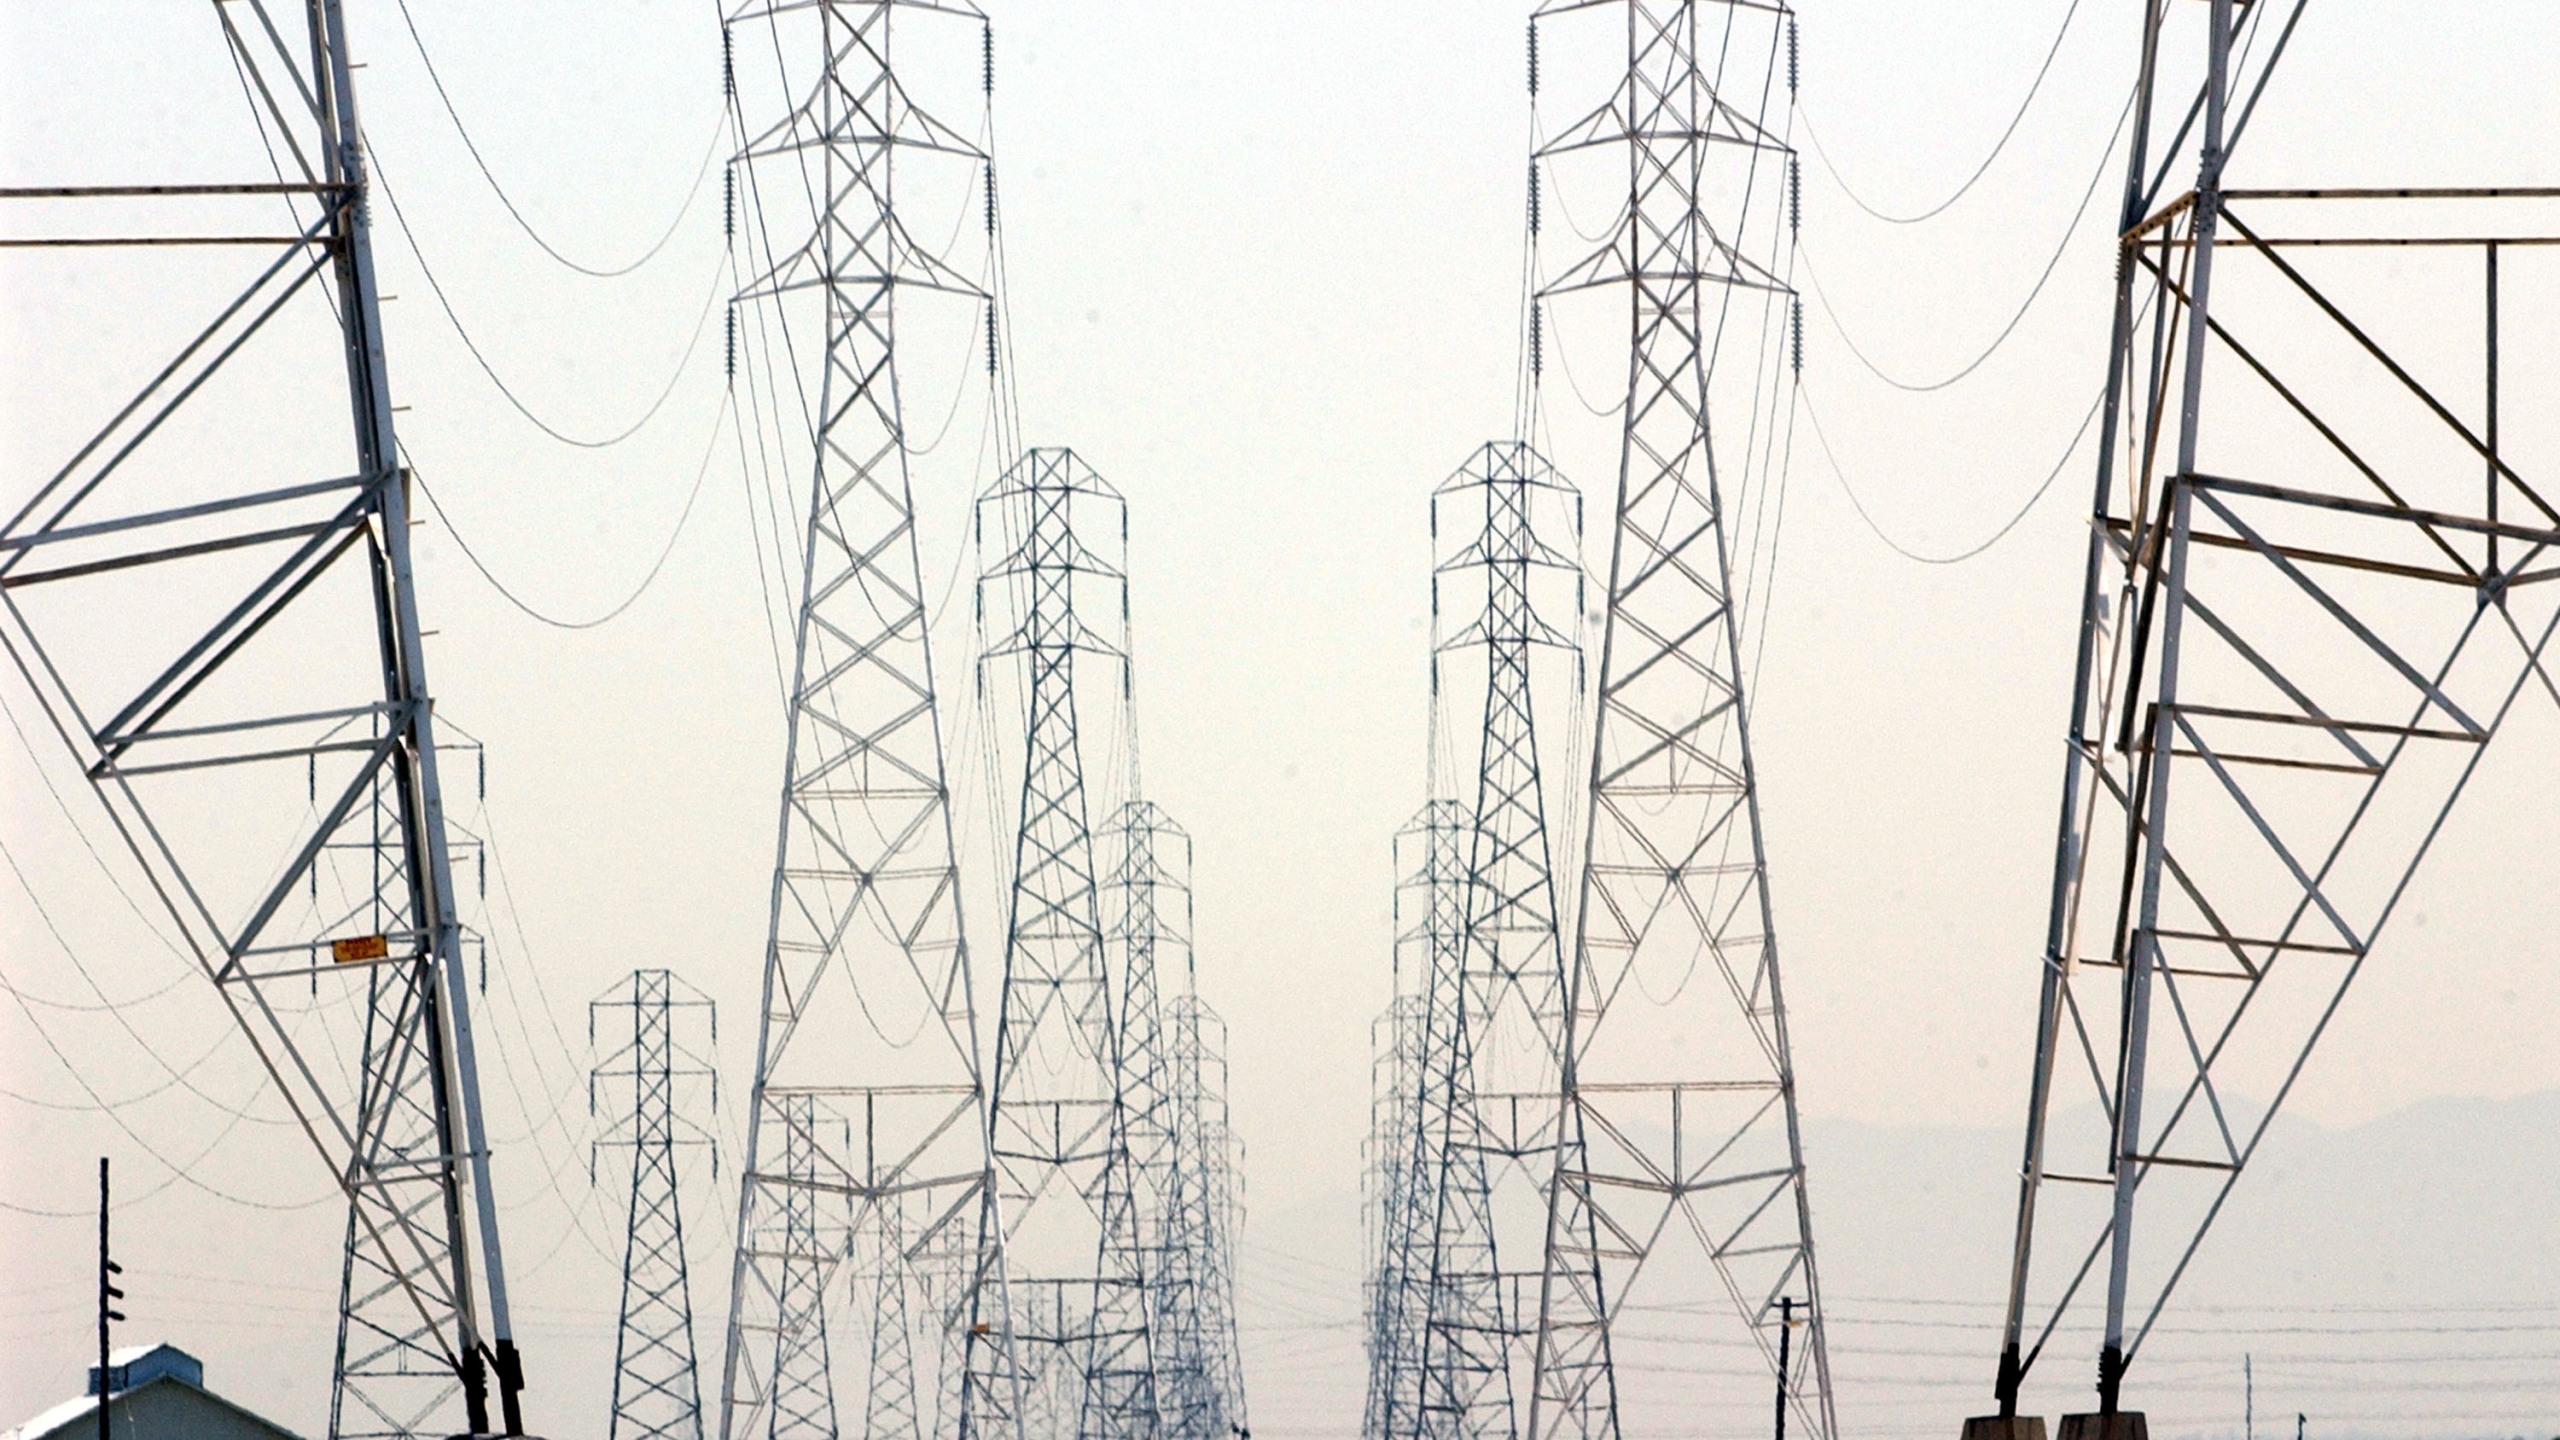 Power line towers are shown in a file photo from July 2002 in Palo Alto. (Justin Sullivan/Getty Images)